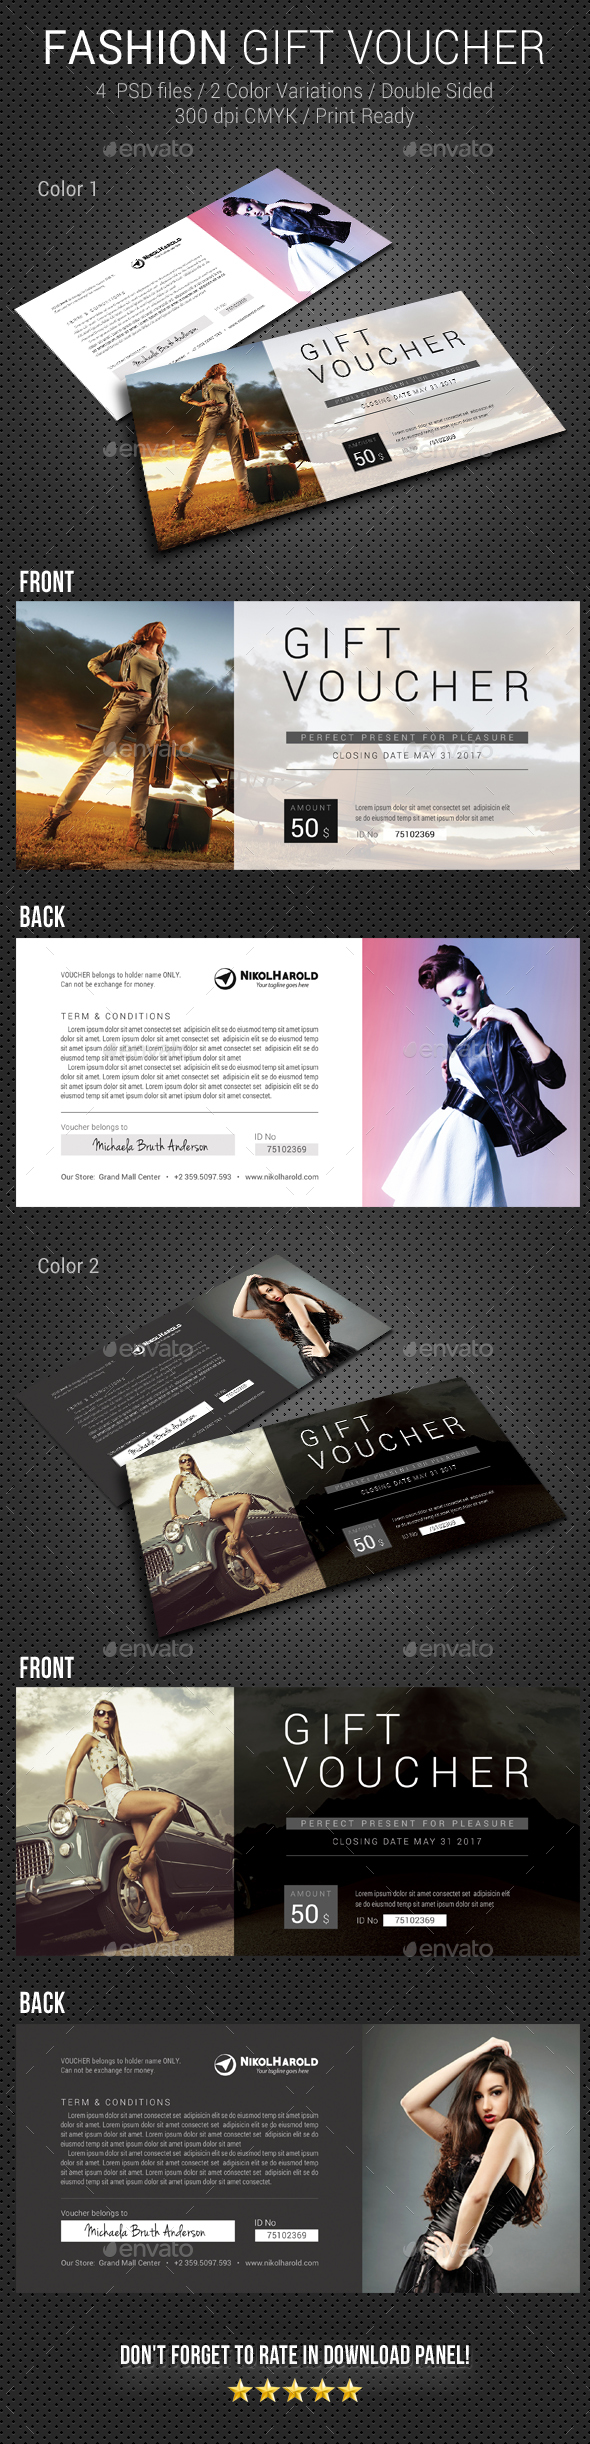 Fashion Gift Voucher - Loyalty Cards Cards & Invites